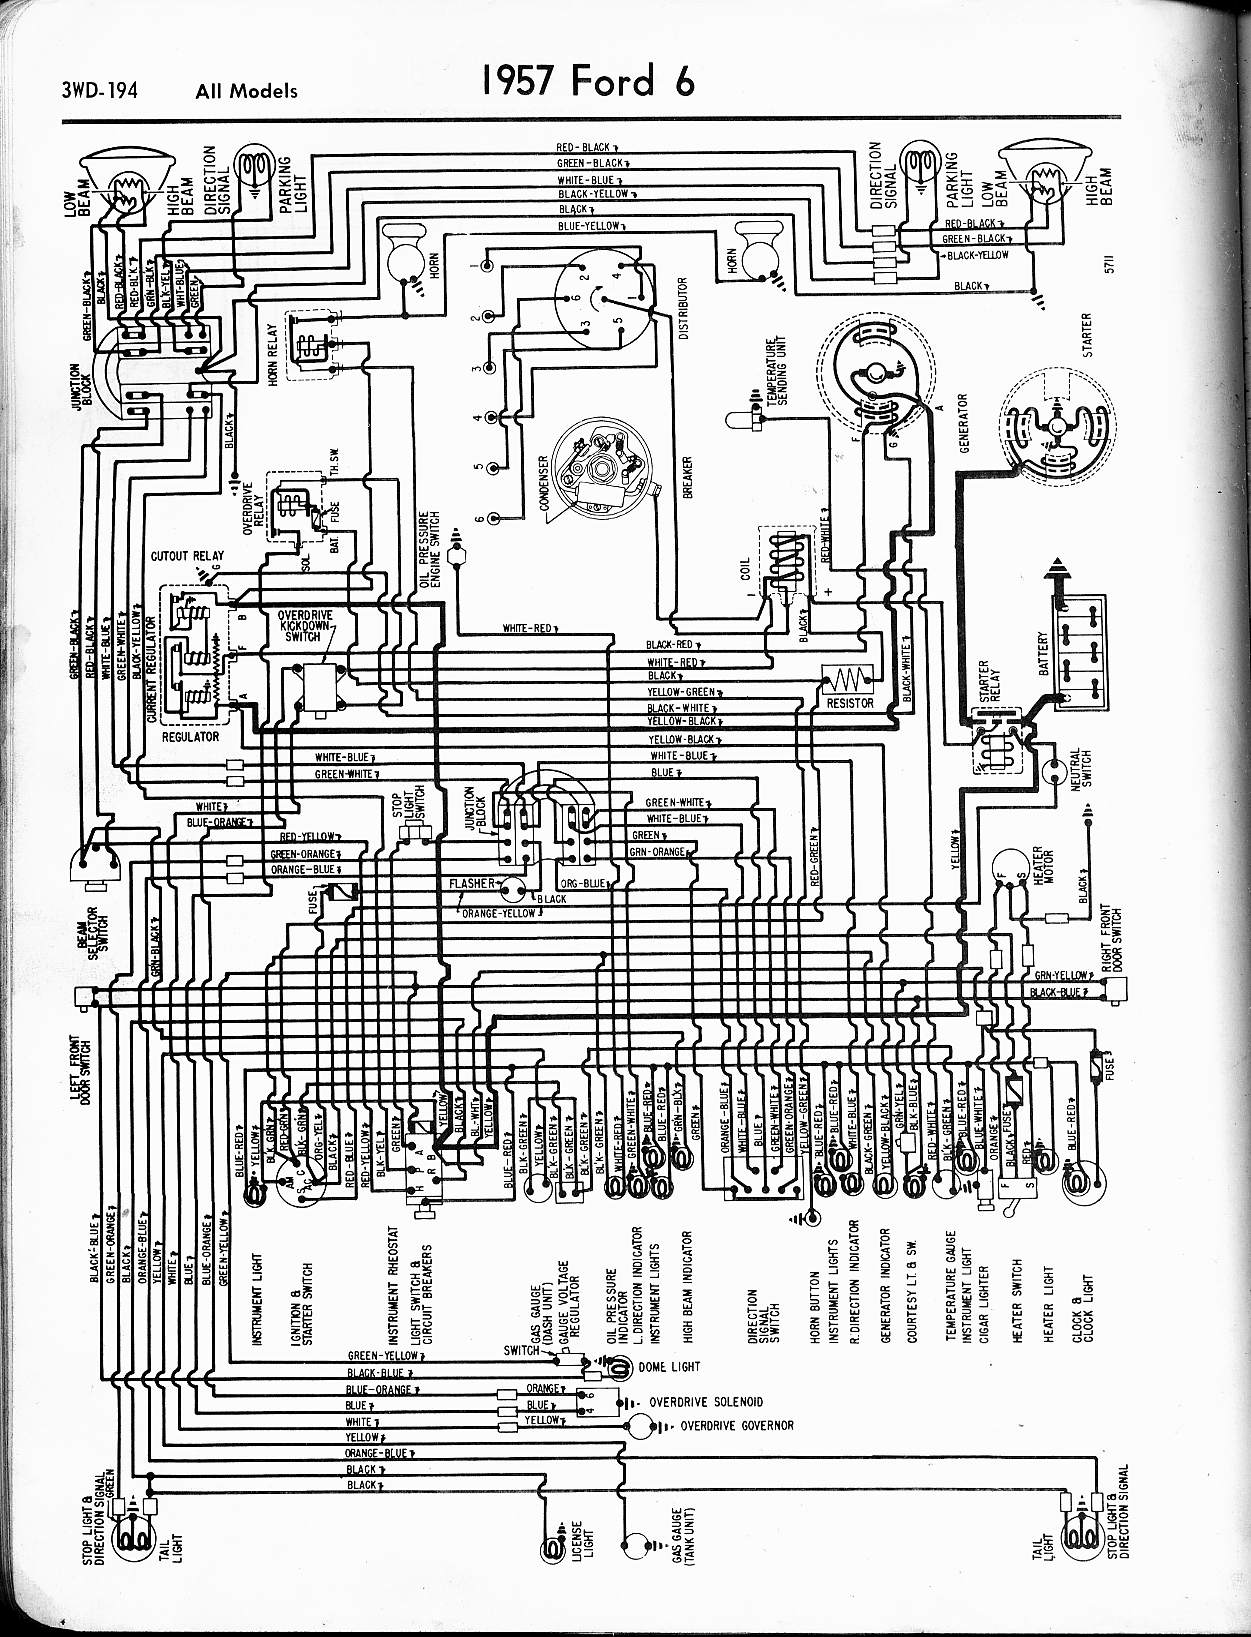 1957 Mercury Wiring Diagram Worksheet And 500 1979 Ford Thunderbird Books Of U2022 Rh Peachykeenxo Co Outboard